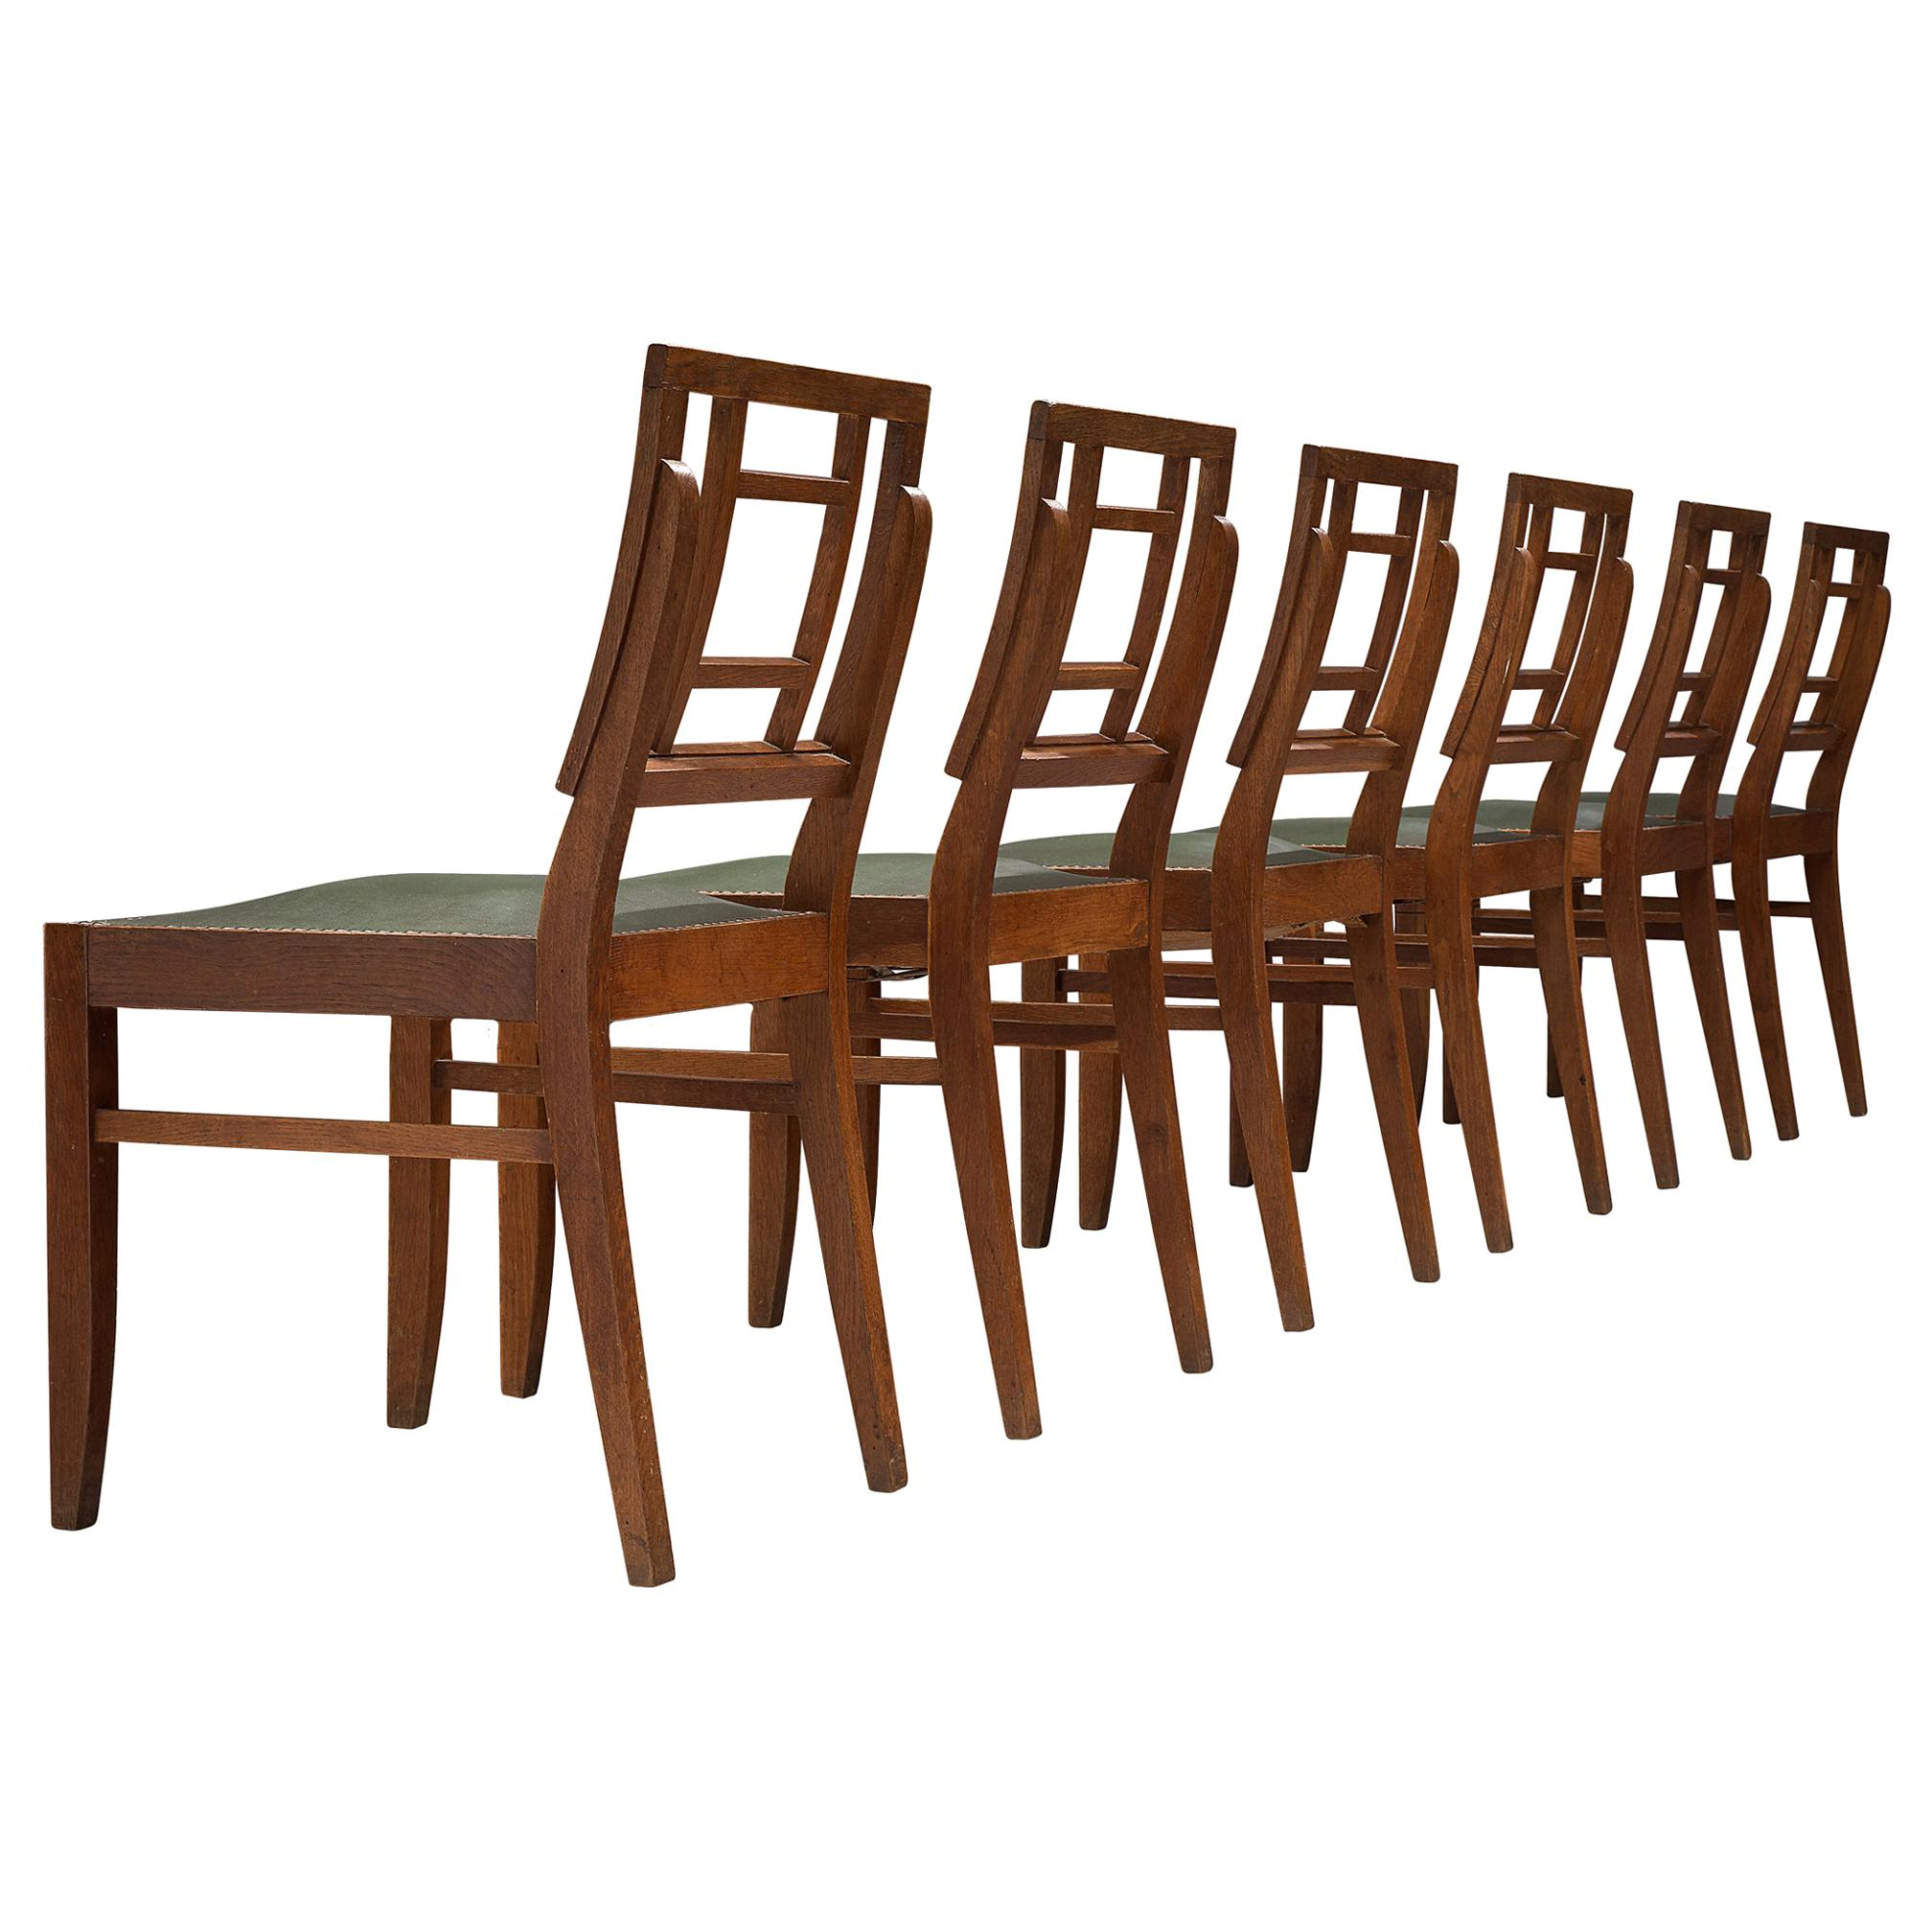 Set of Six Art Deco Dining chairs in Darkened Oak